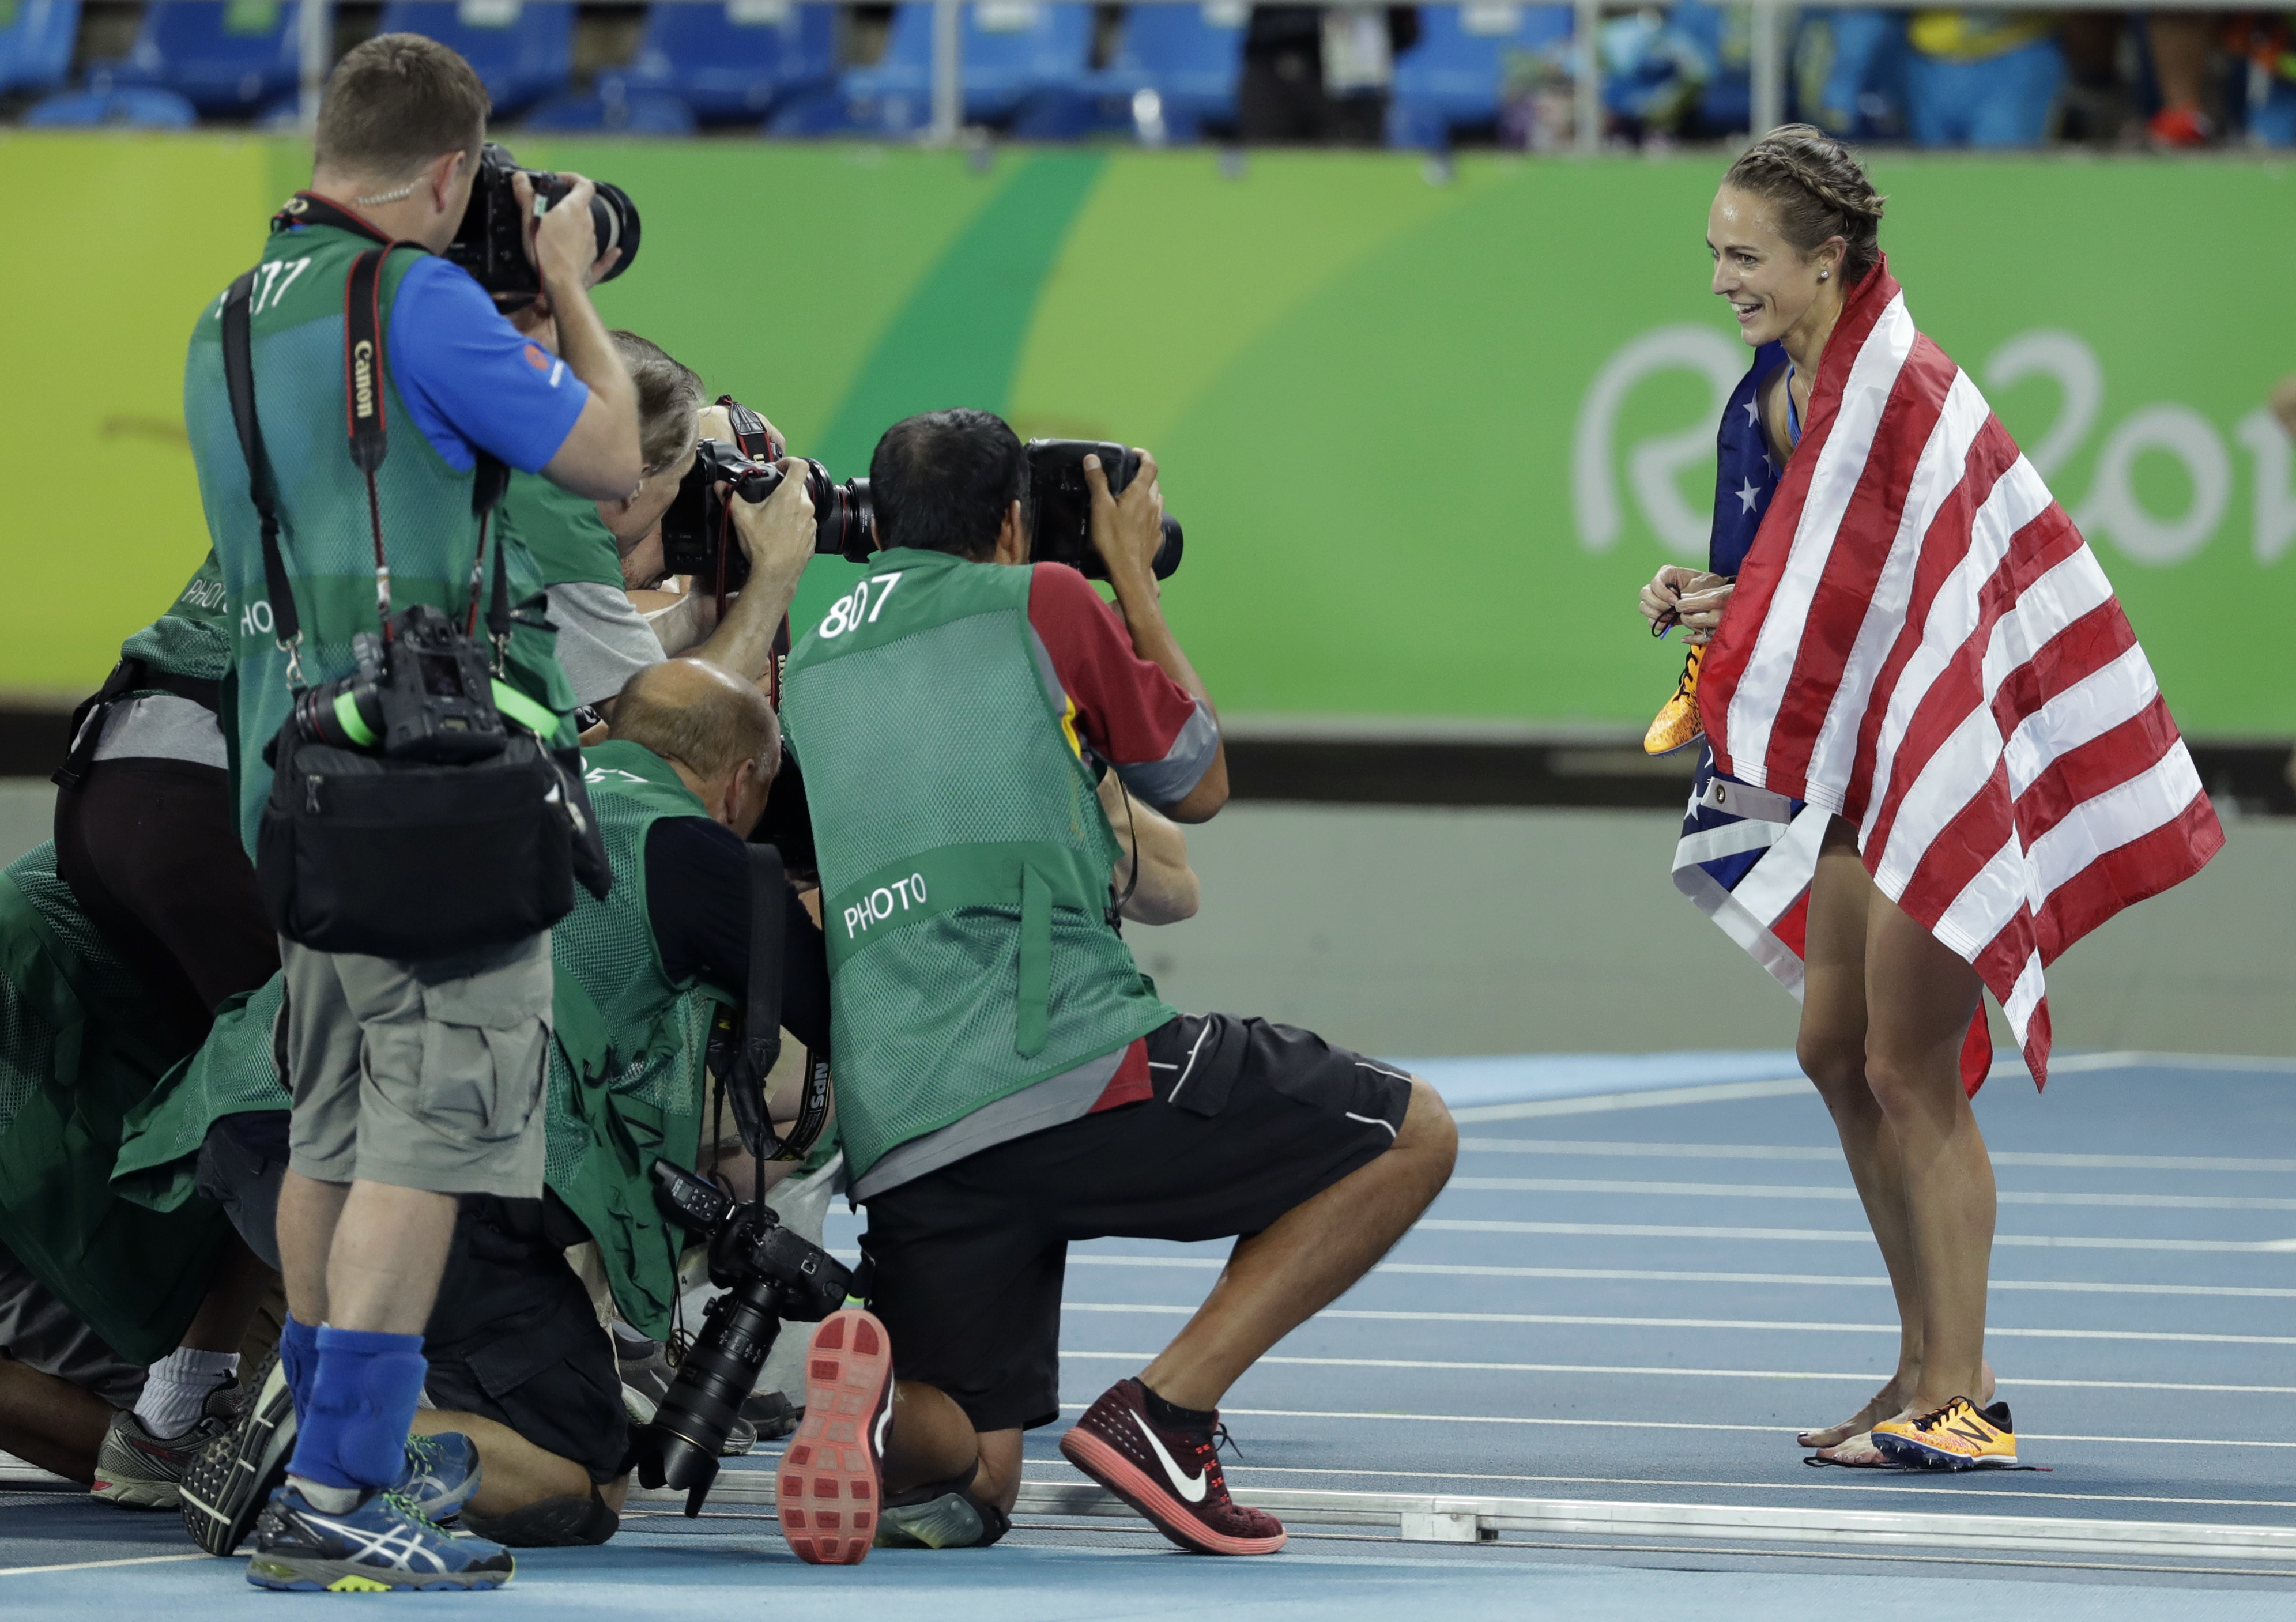 Photo: Jennifer Simpson poses for photographers after winning bronze in the women's 1500-meter final at the 2016 Summer Olympics in Rio de Janeiro (AP)